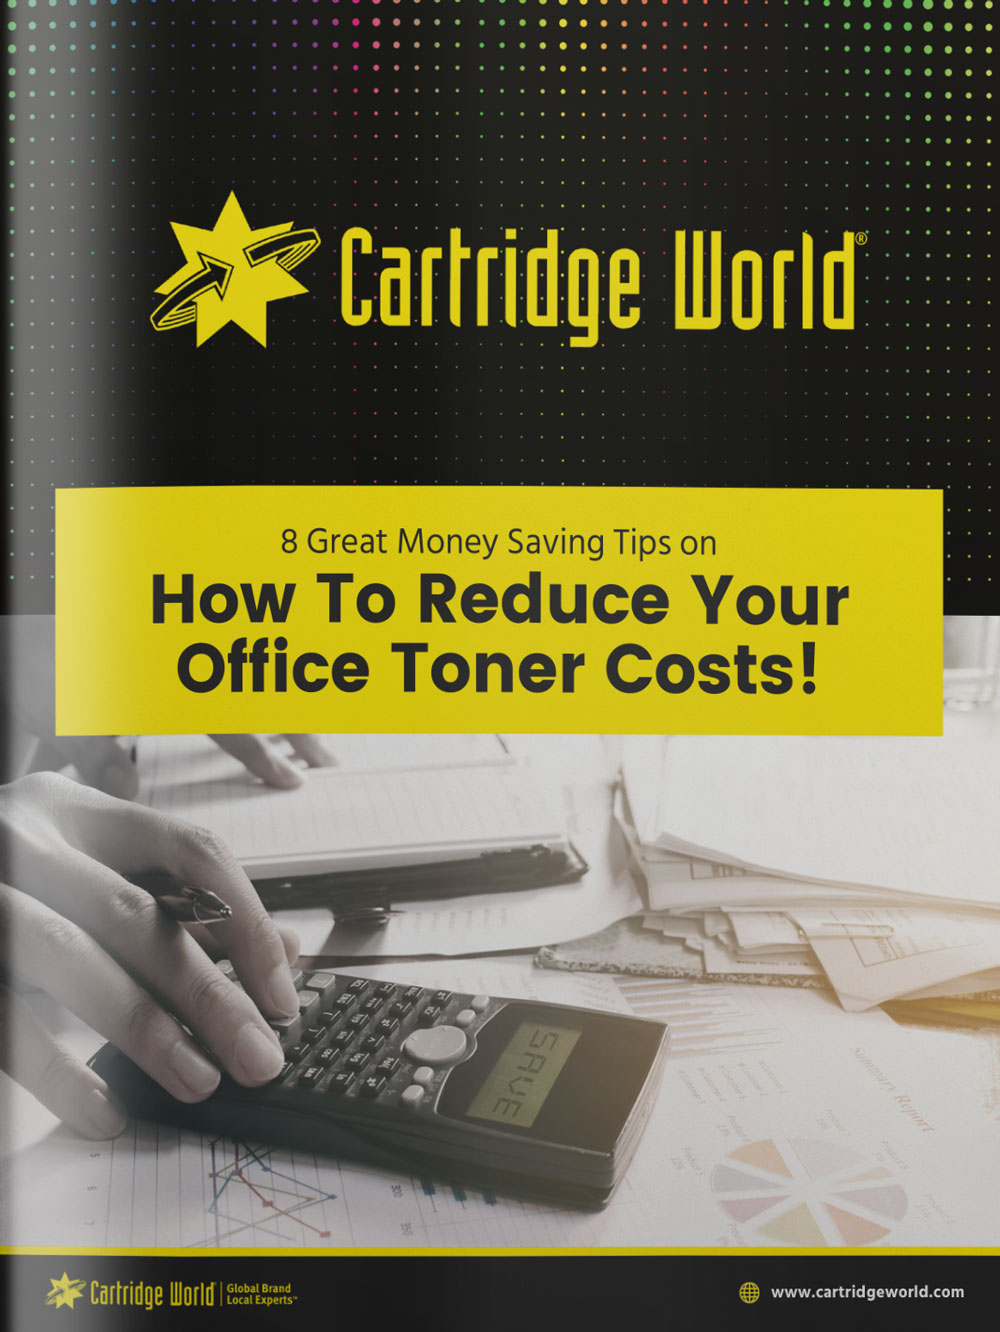 GUIDE TO SAVE ON OFFICE TONER